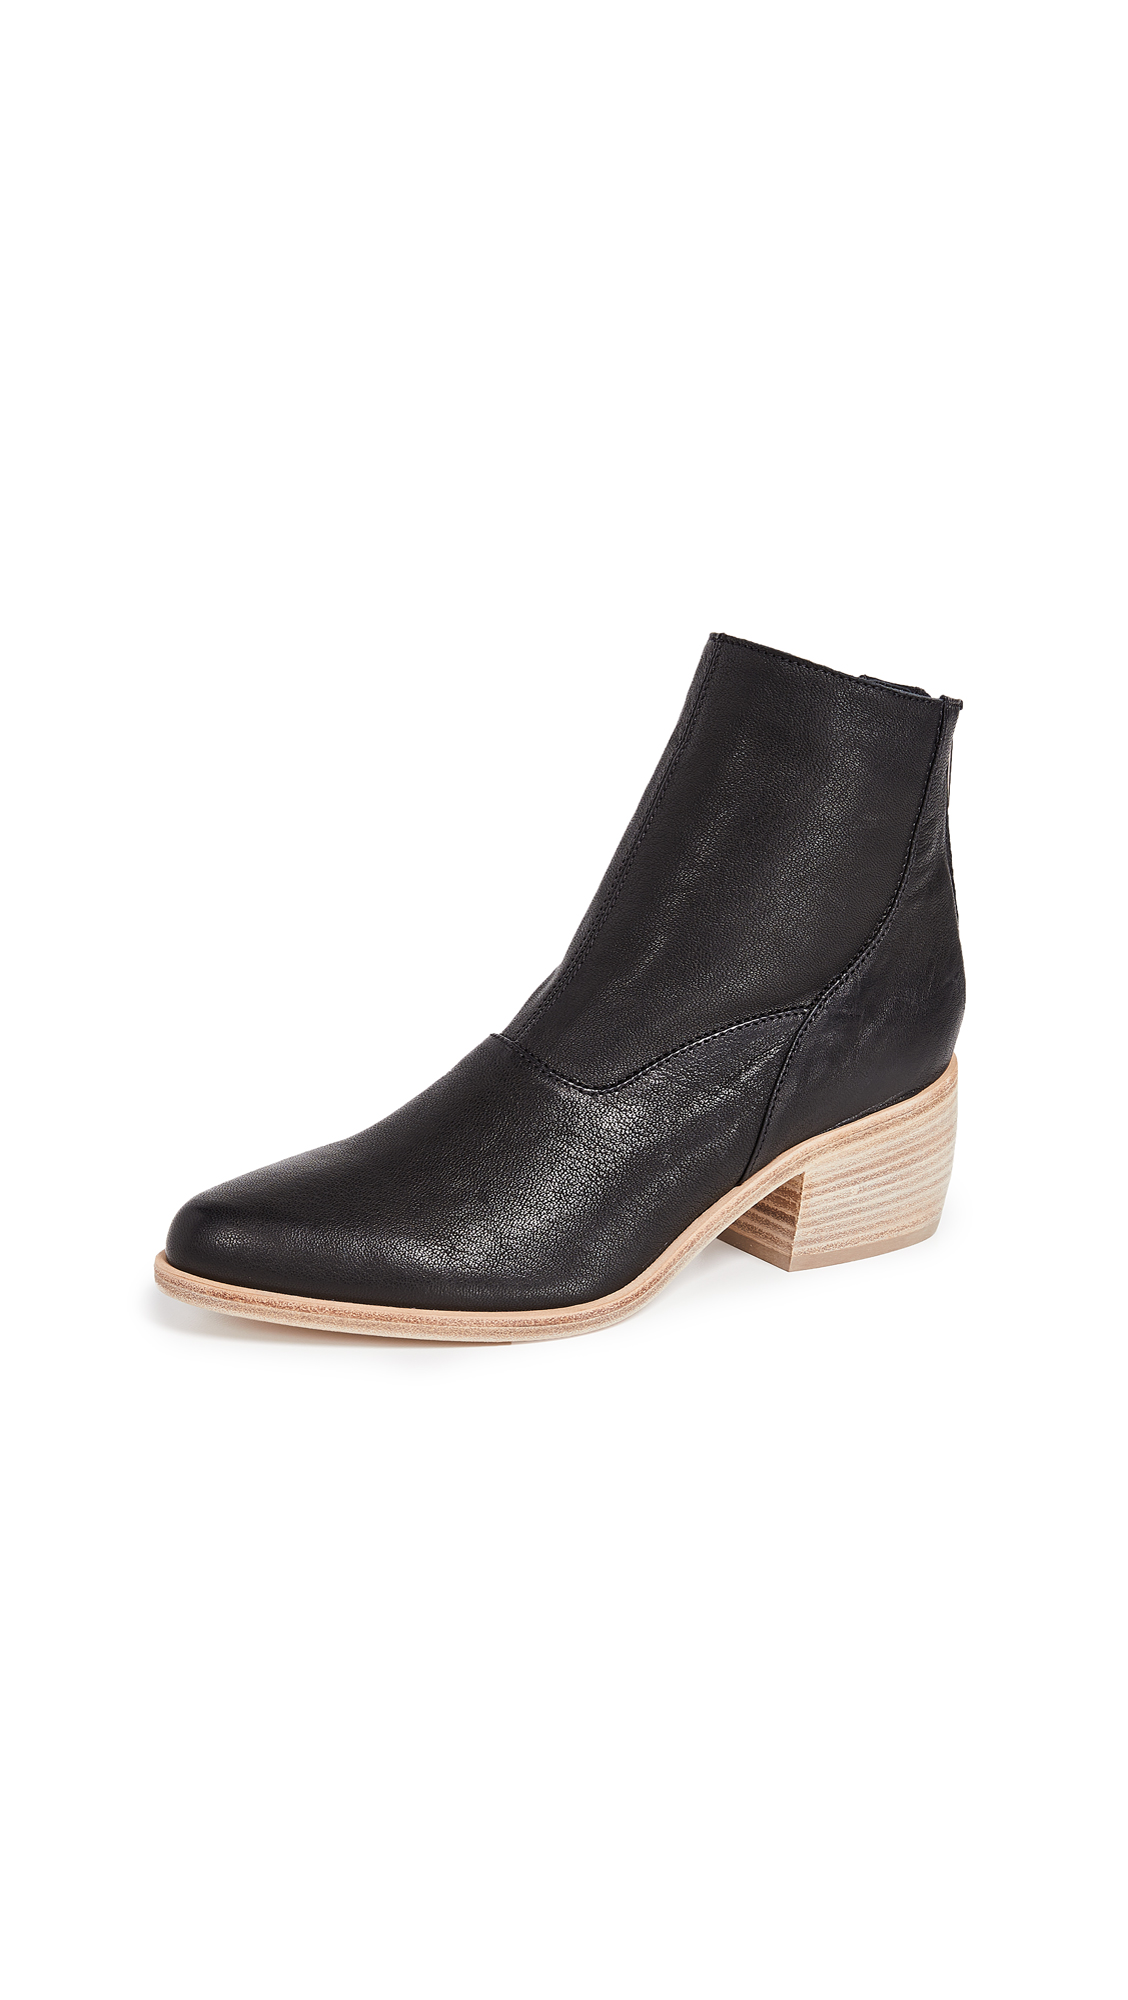 LD Tuttle The Door Block Heel Booties - Black Natural